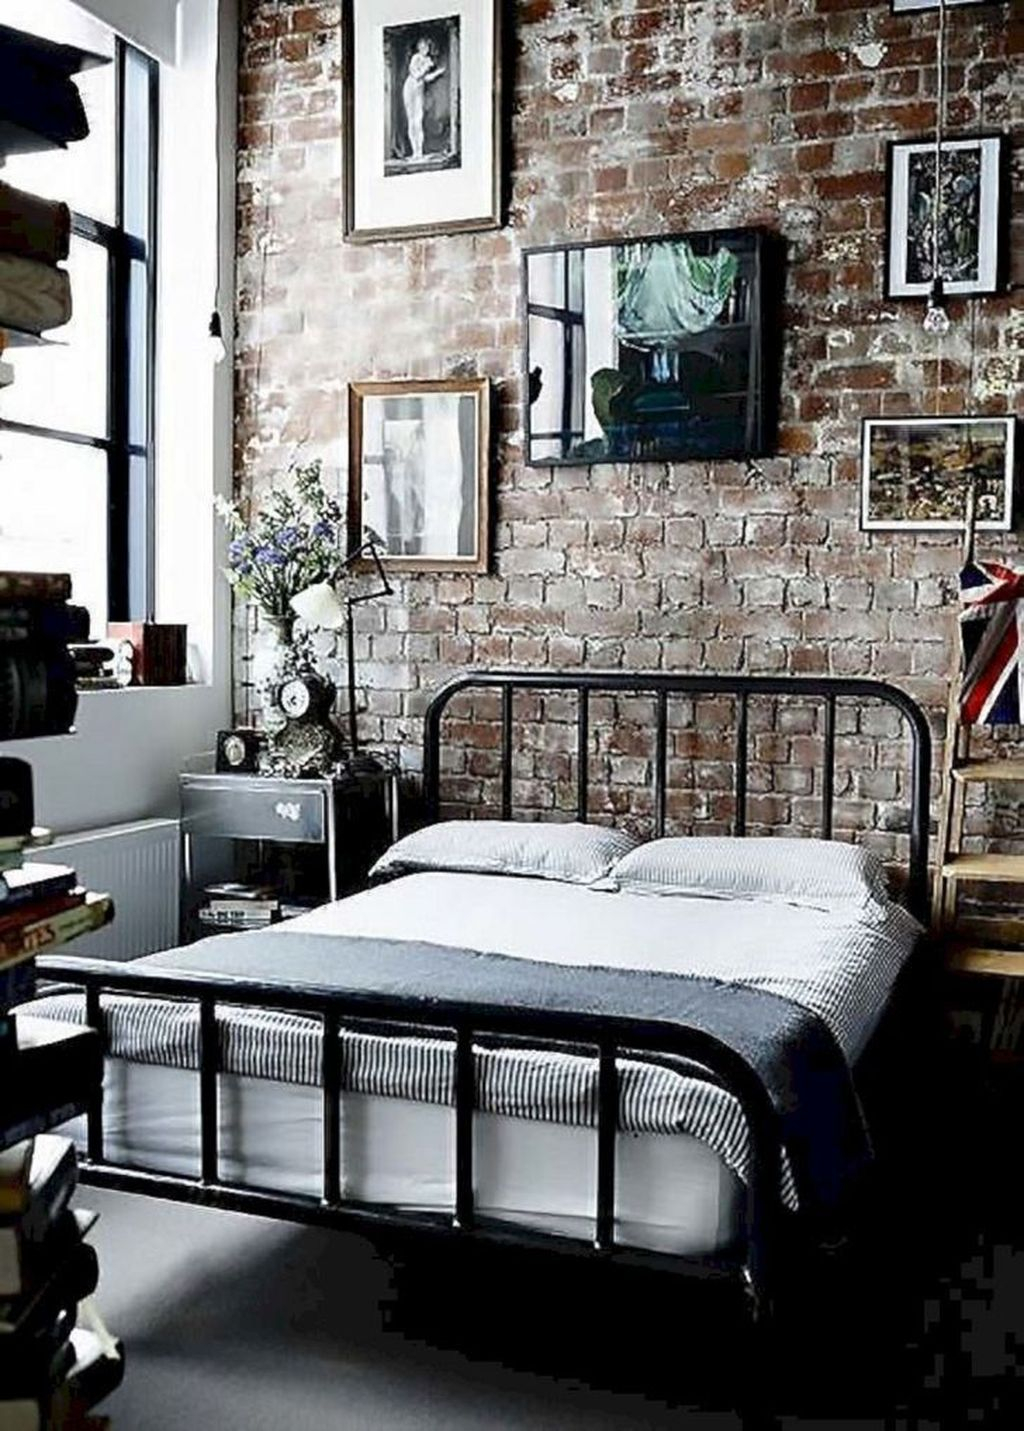 Awesome Industrial Style Bedroom Design Ideas40